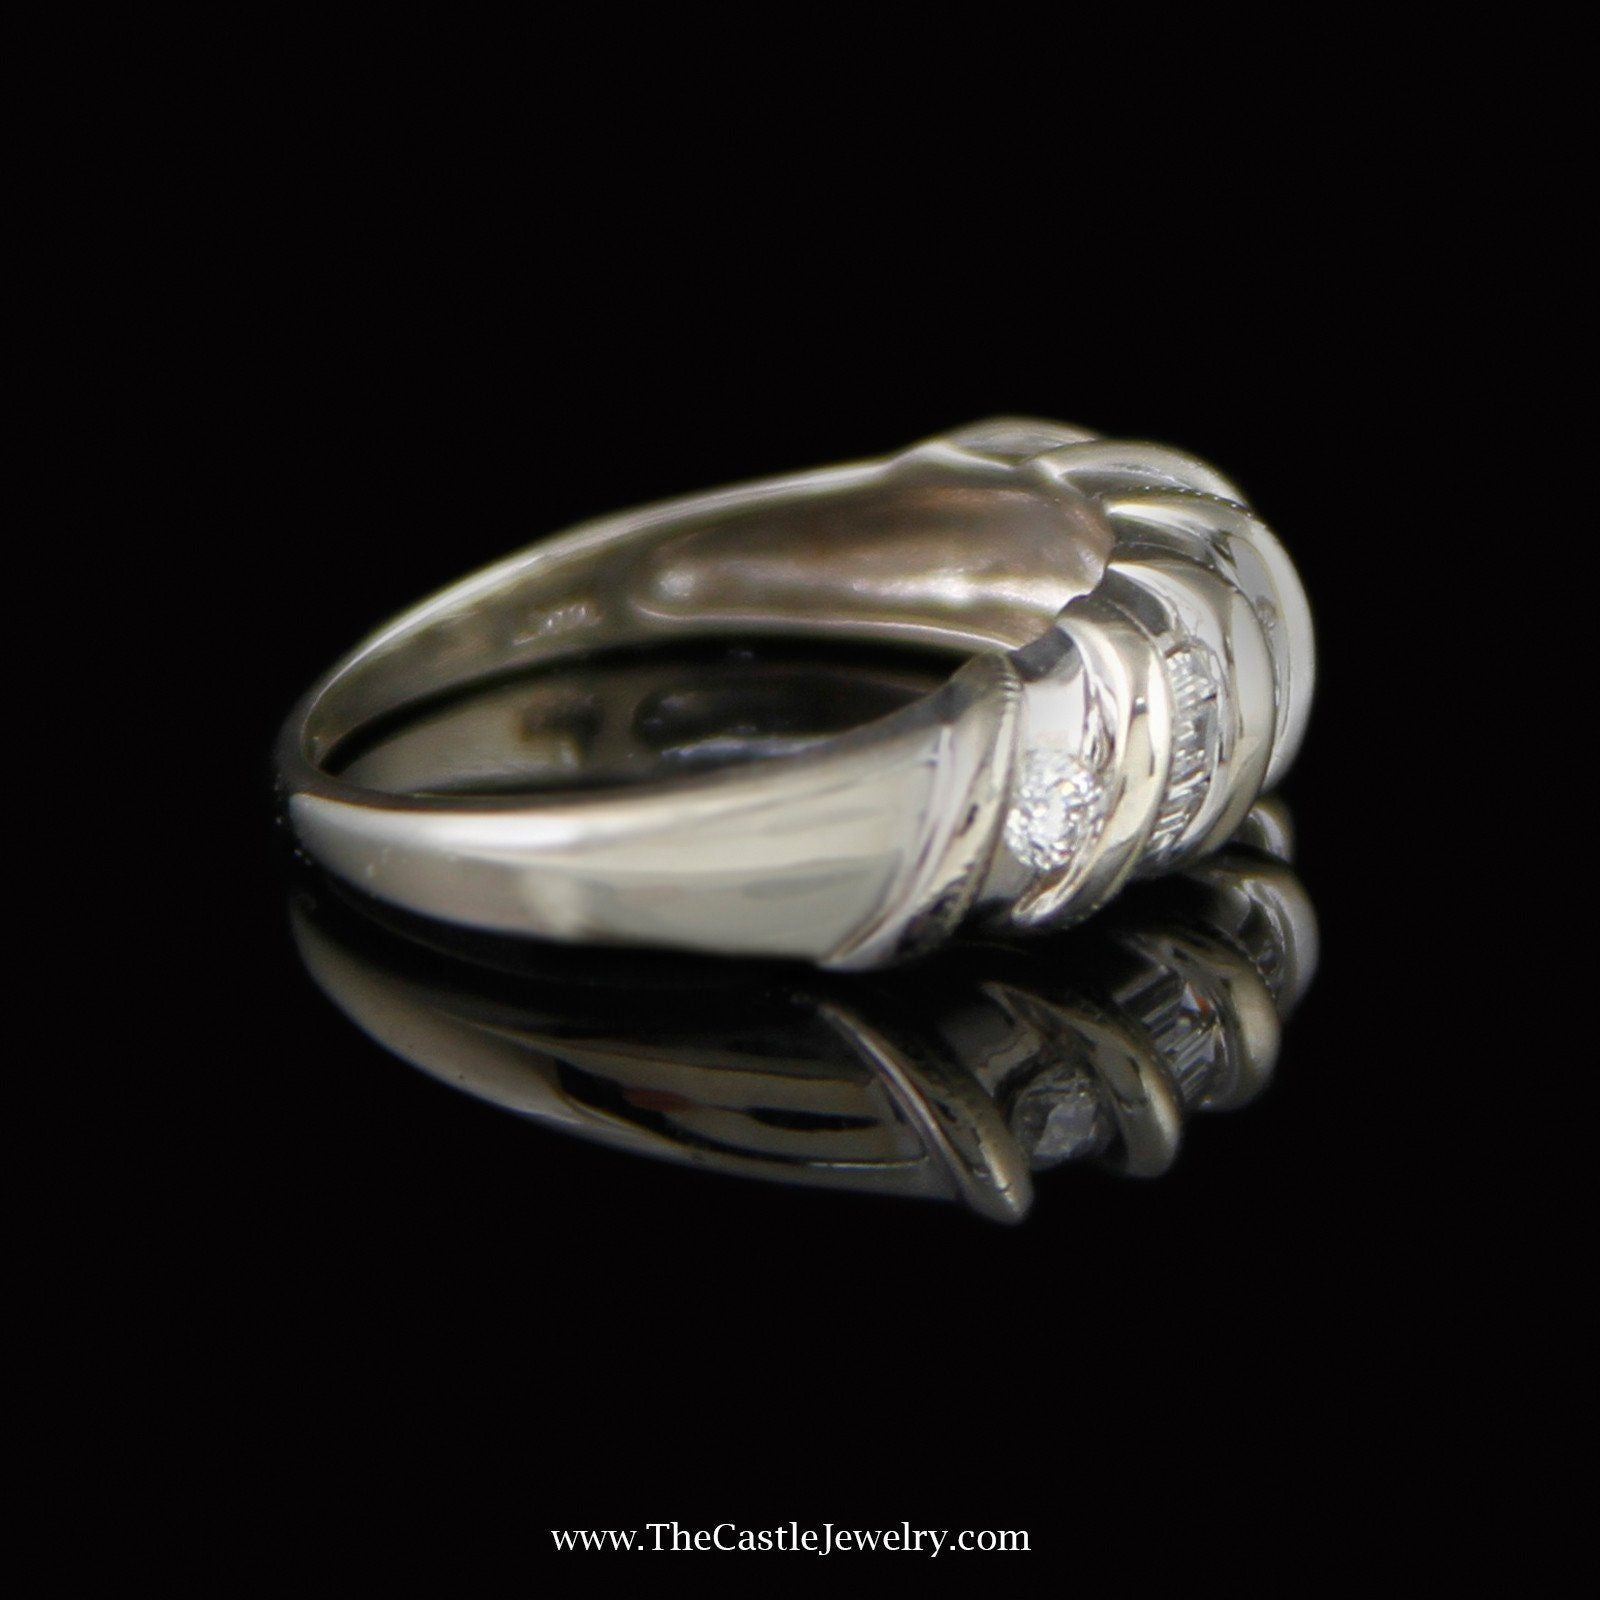 Swirl Design Ring with .25cttw Total Diamond Weight in 14K White Gold-2